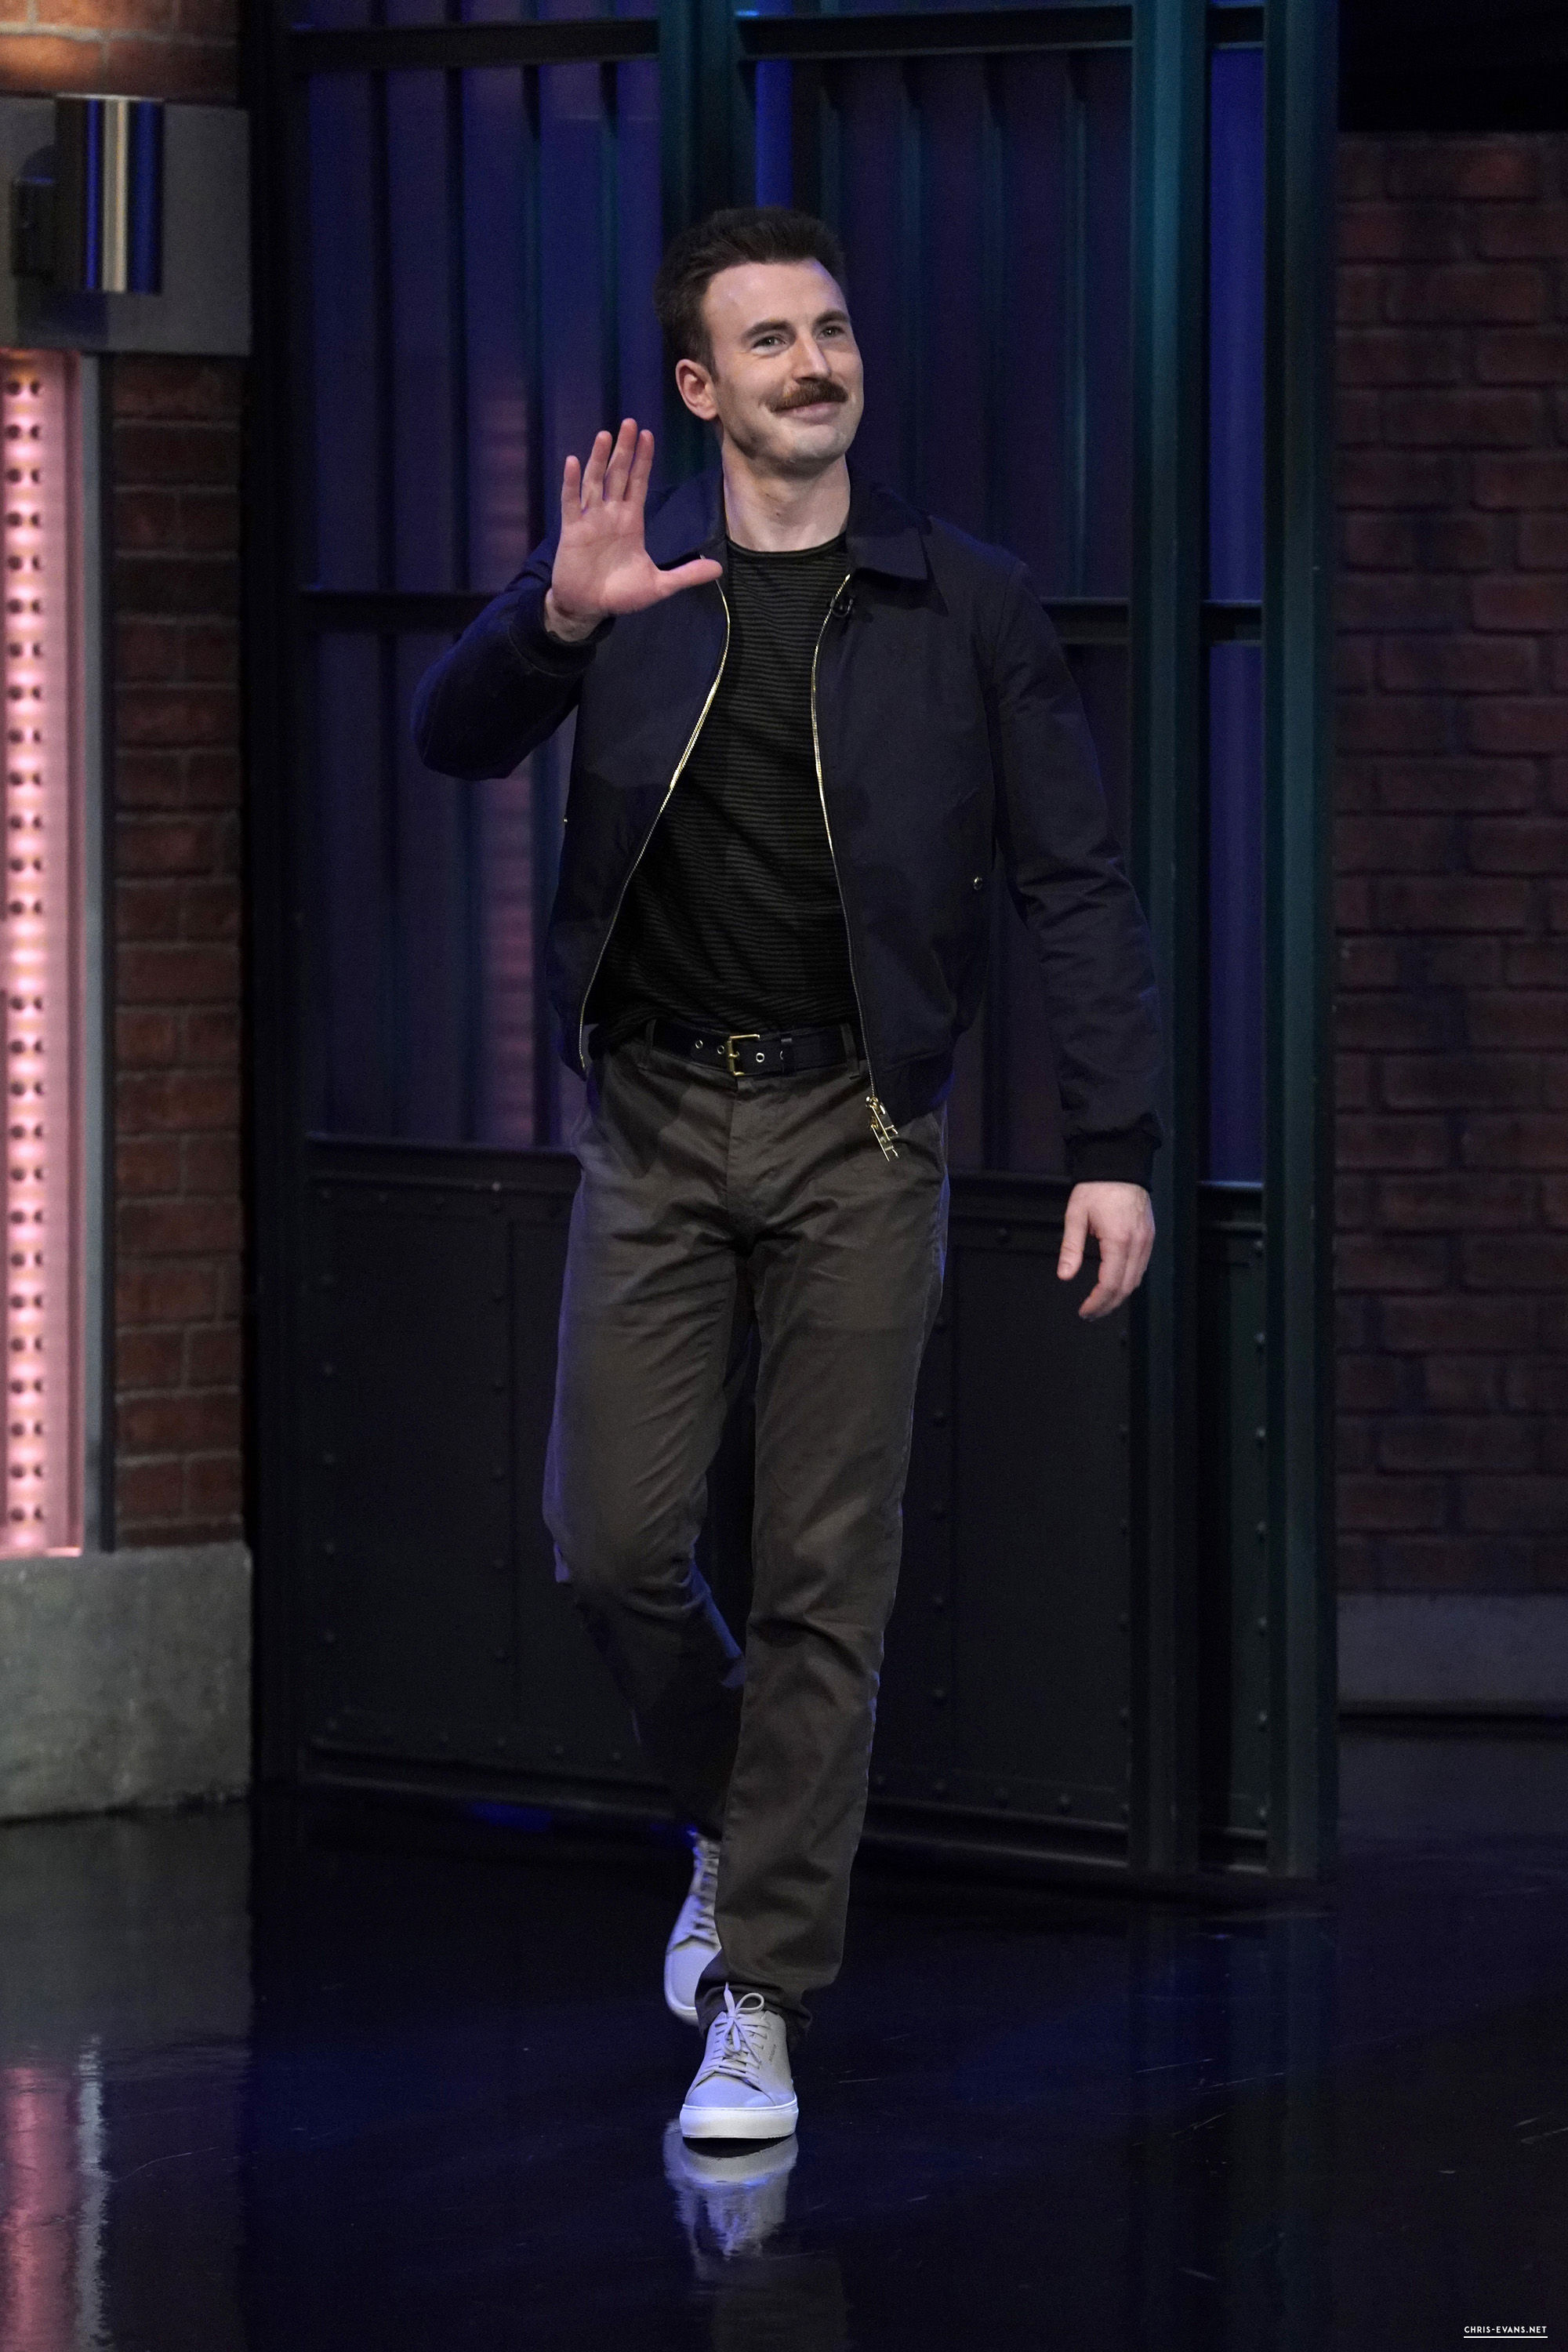 http://chris-evans.net/photos/albums/Appearances/2018/04%2023%20Late%20Night%20with%20Seth%20Meyers/001.jpg